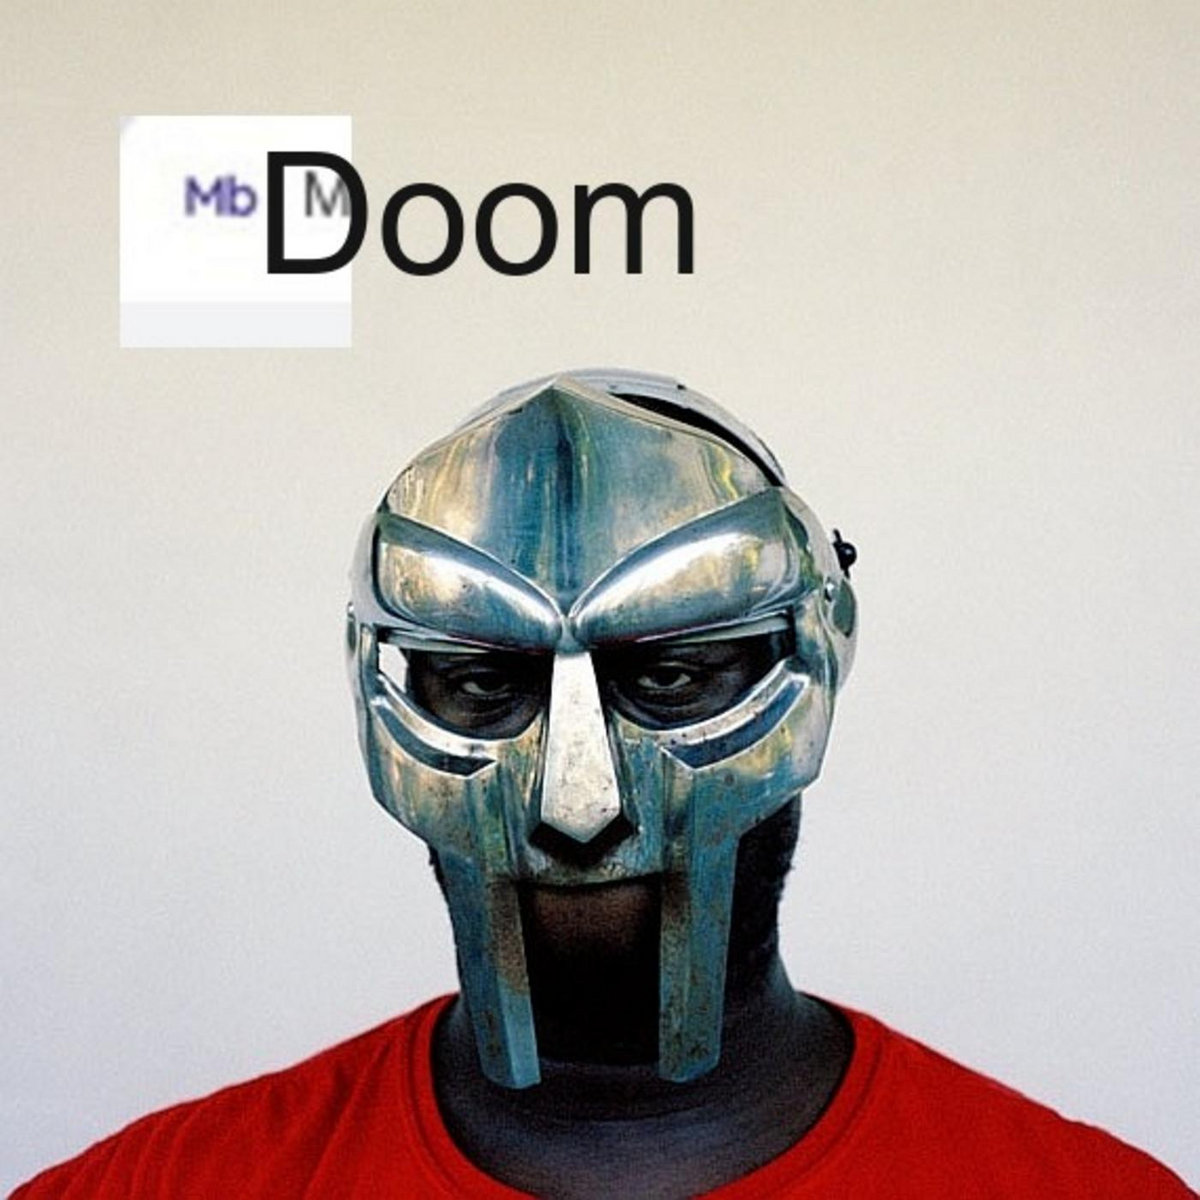 Mf Doom Song Remixes With Melobytes Olub Apps in the same category. bandcamp